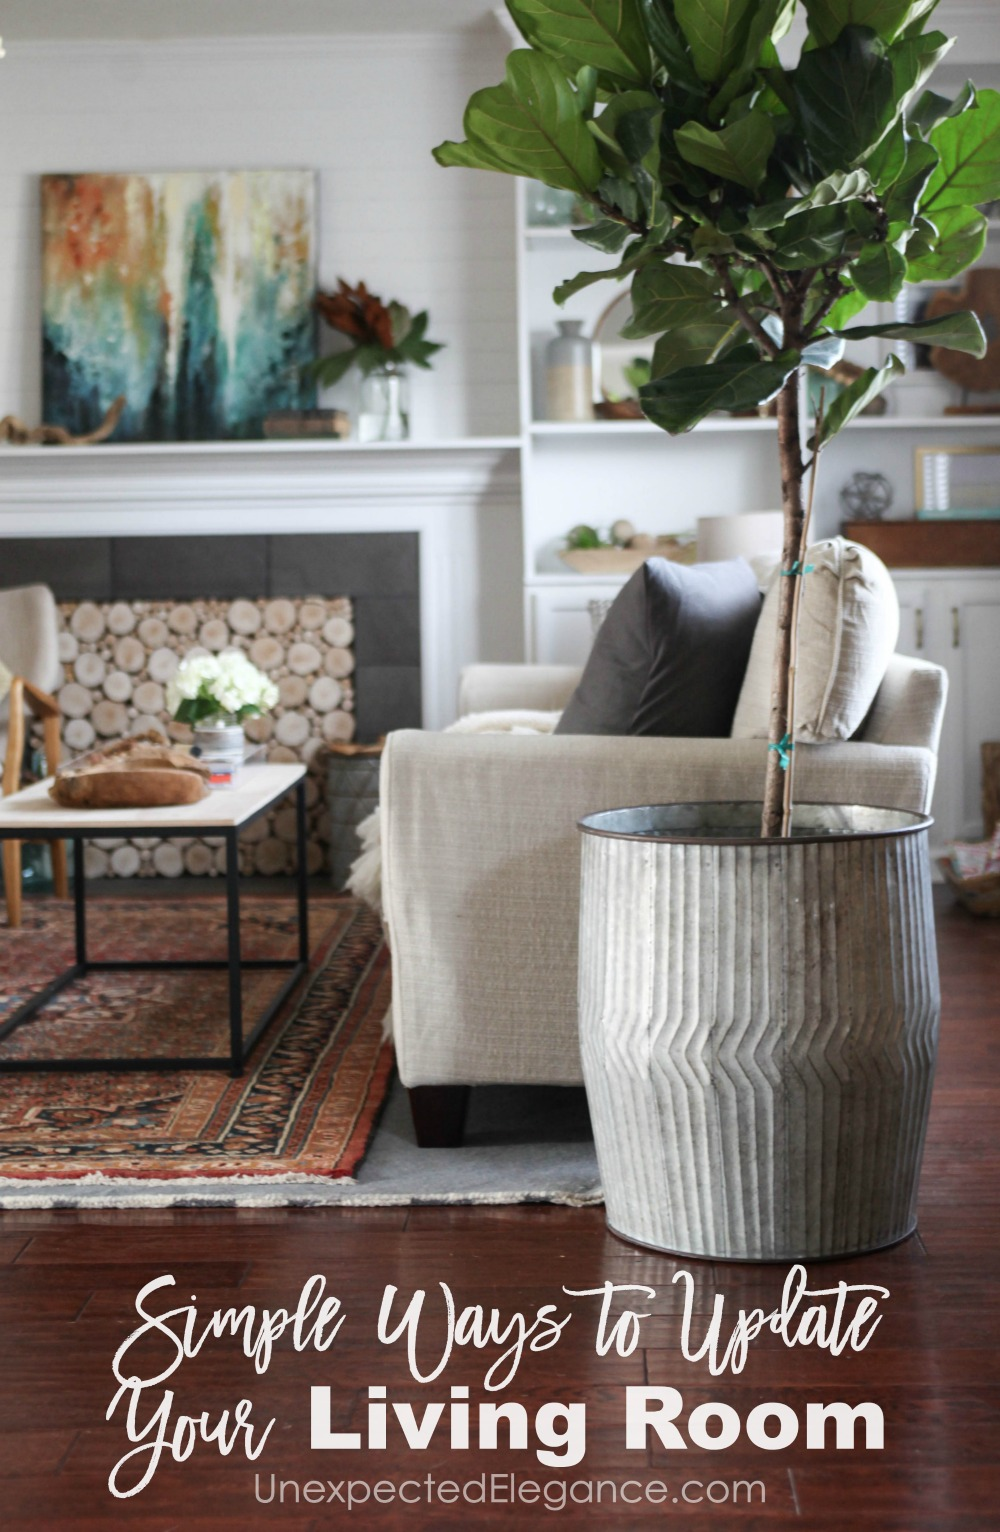 Does your living room need some sprucing up? Check out these simple ways to update your living room without spending a lot of money!